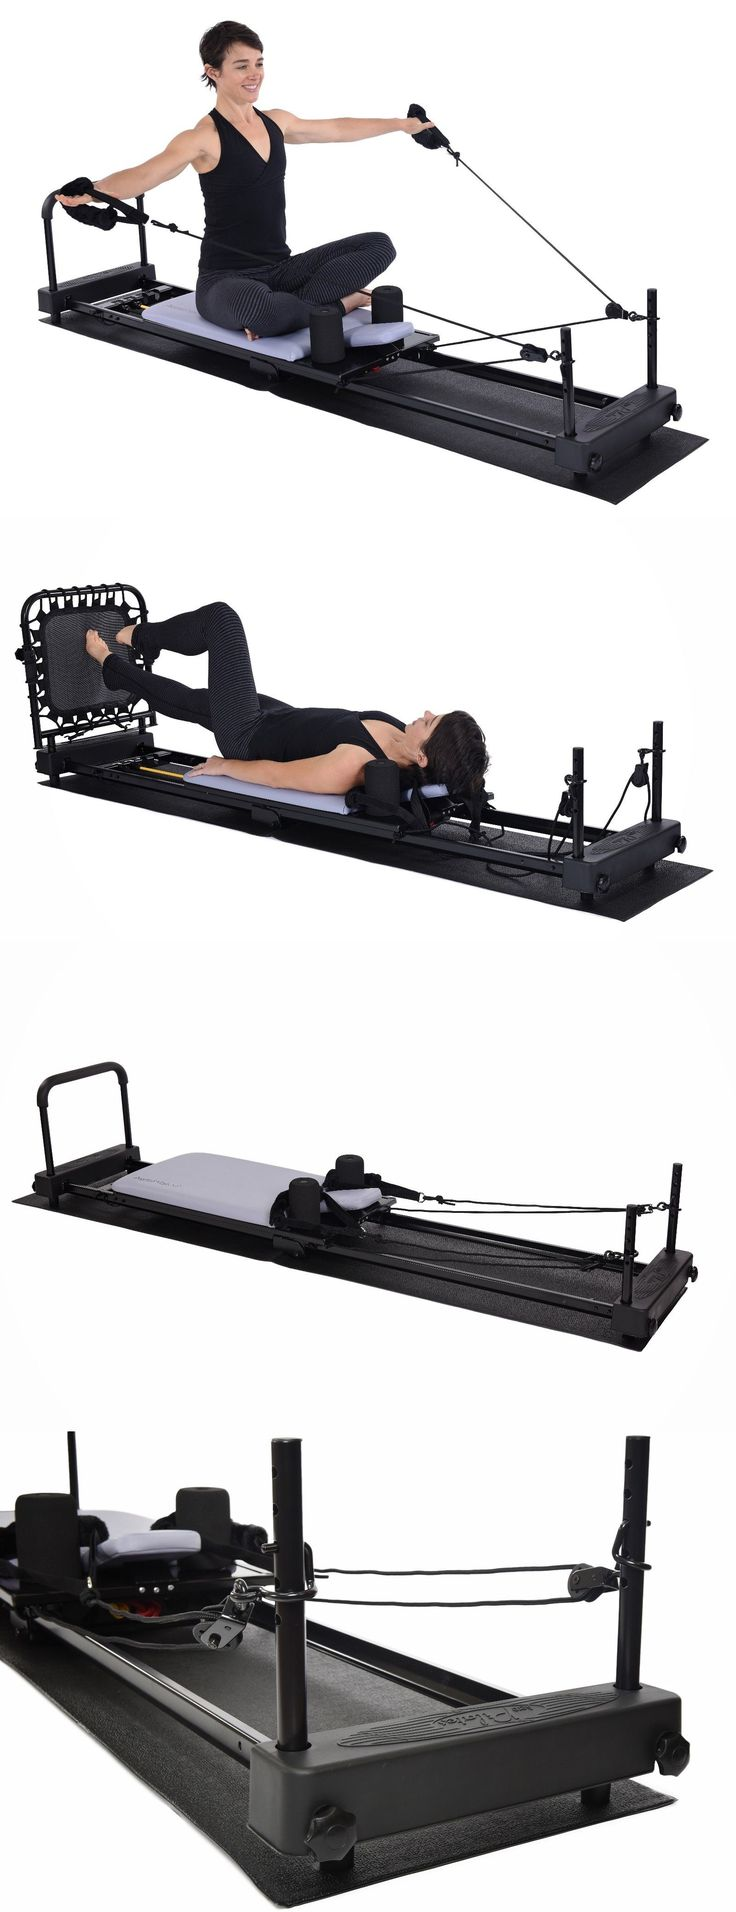 Pilates Tables 179807: Aeropilates Reformer 4420 -> BUY IT NOW ONLY: $329.99 on eBay!